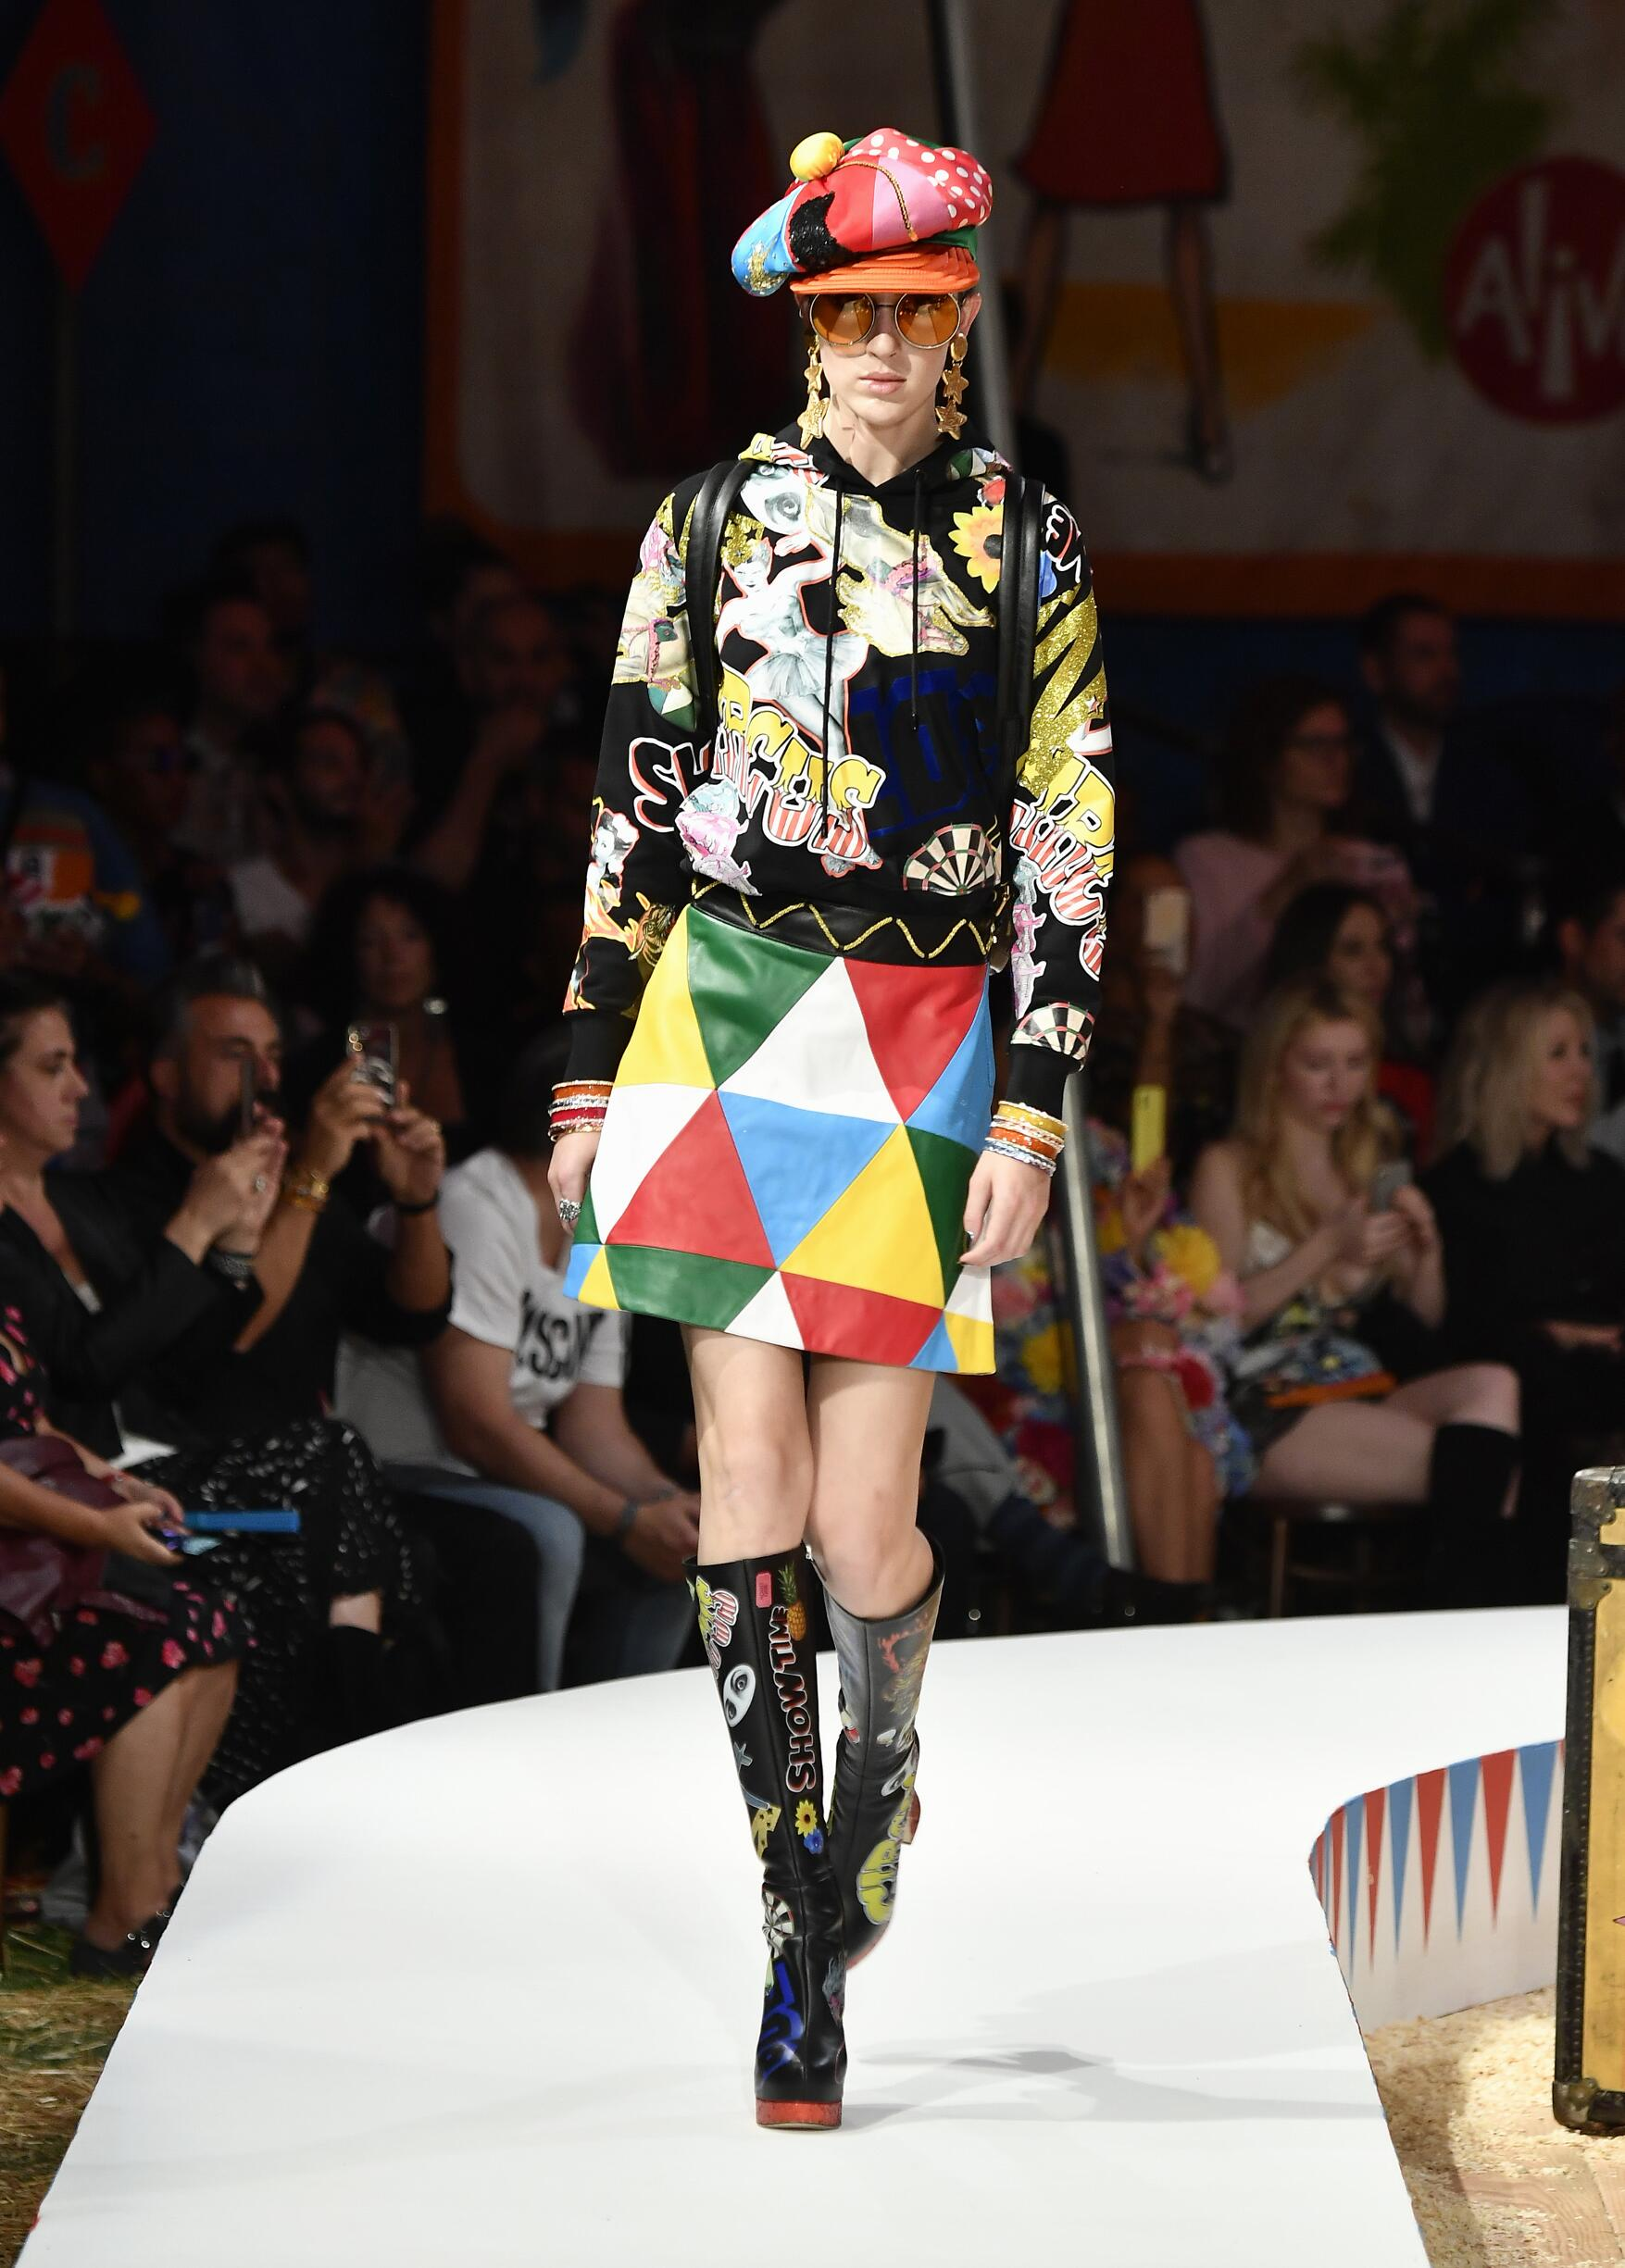 Moschino Spring Summer 2019 Menswear and Women's Resort Collection Look 23 Los Angeles